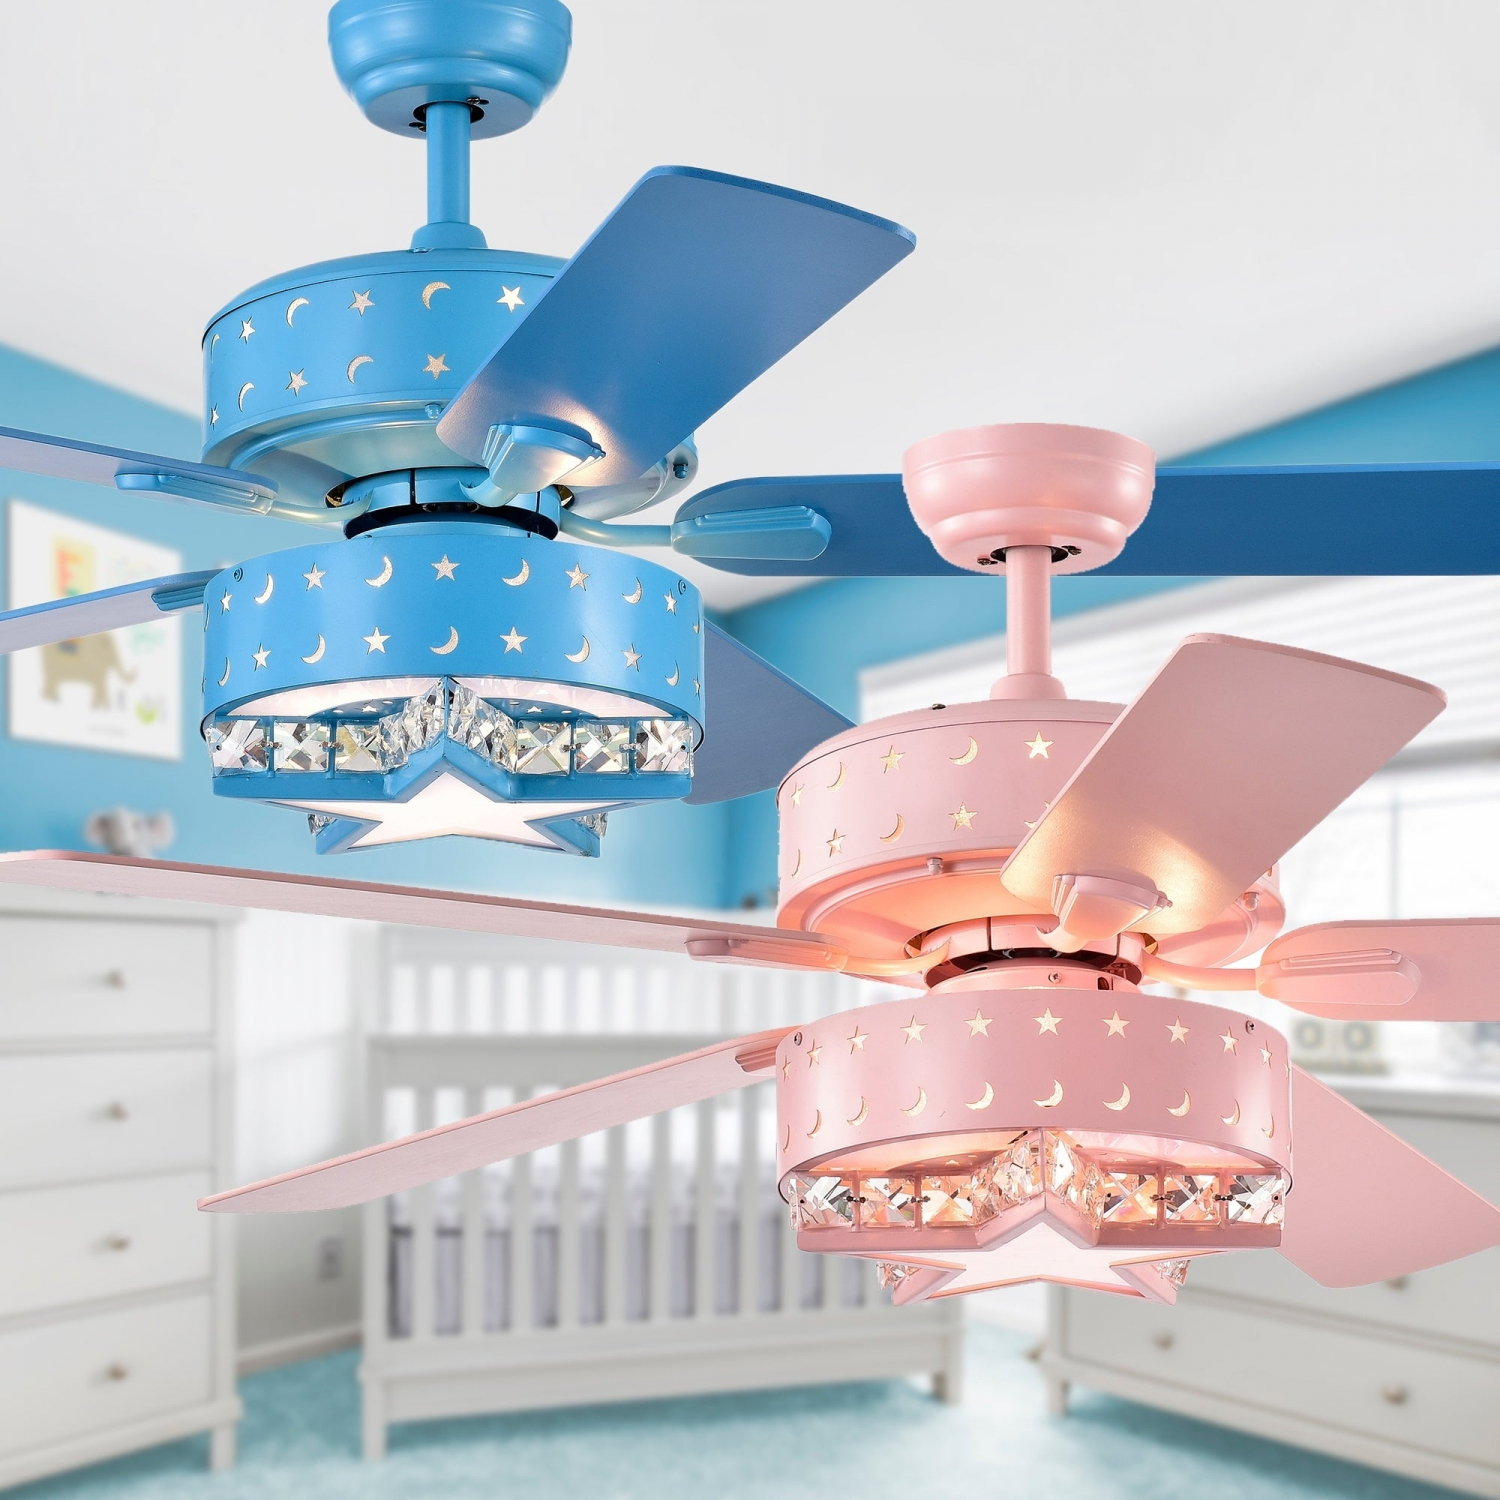 Childrens Room Lighted Ceiling Fan